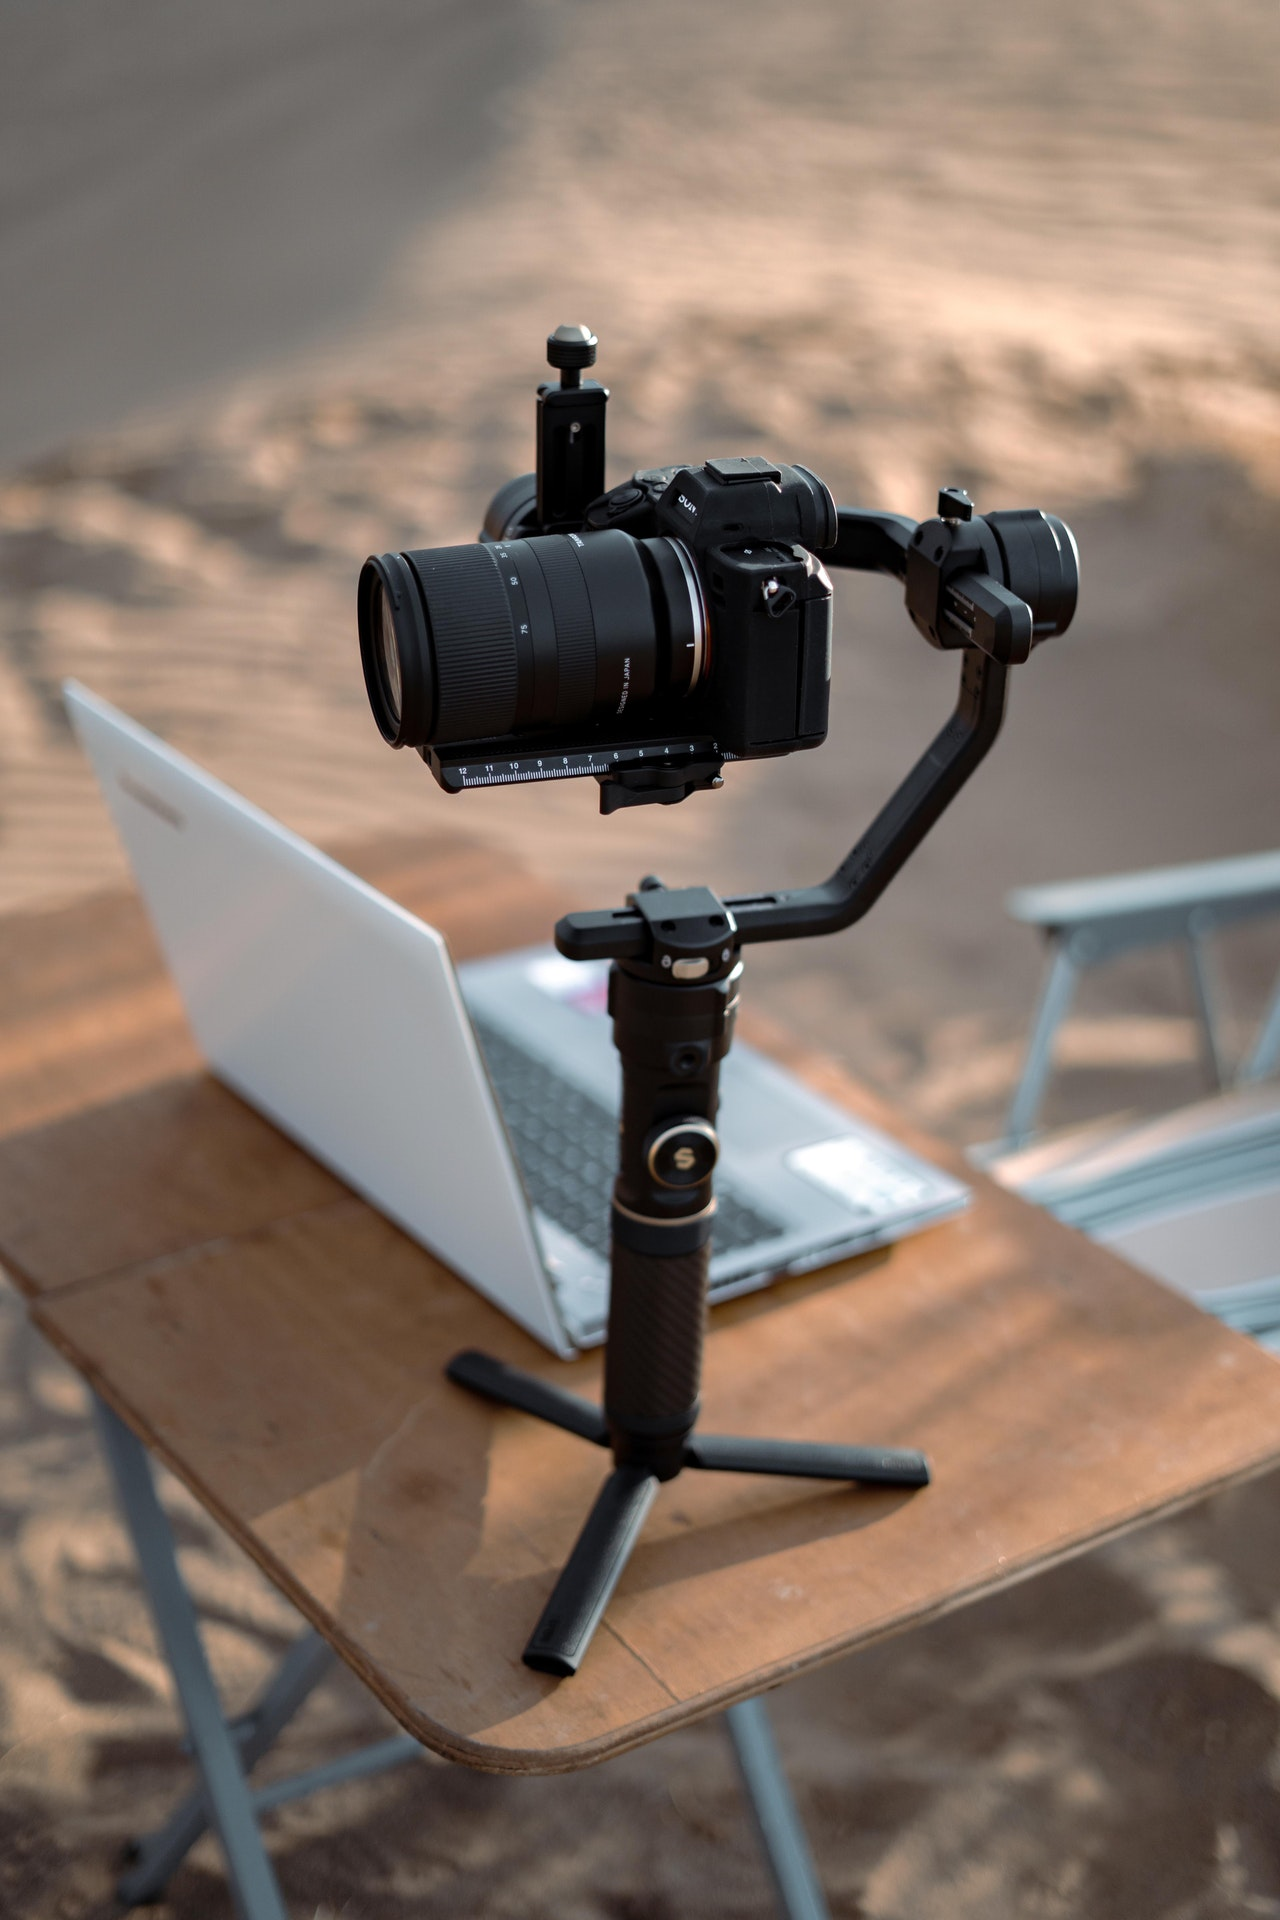 DSLR camera on a gimbal ready for filming